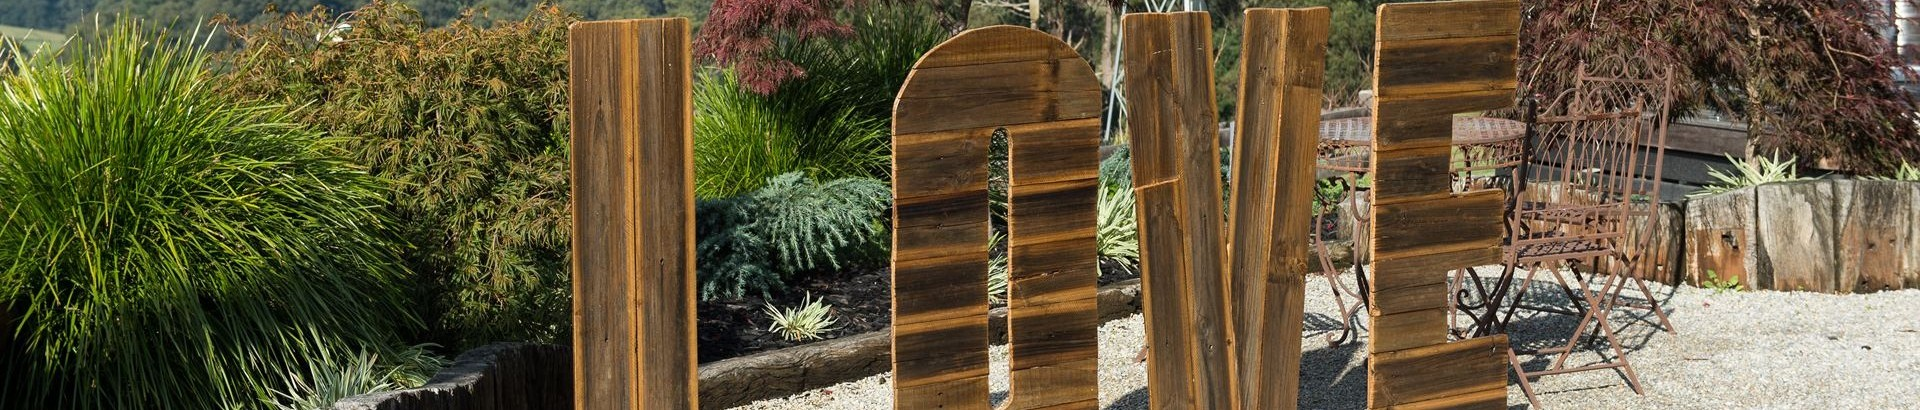 Large Giant wooden Love Letters